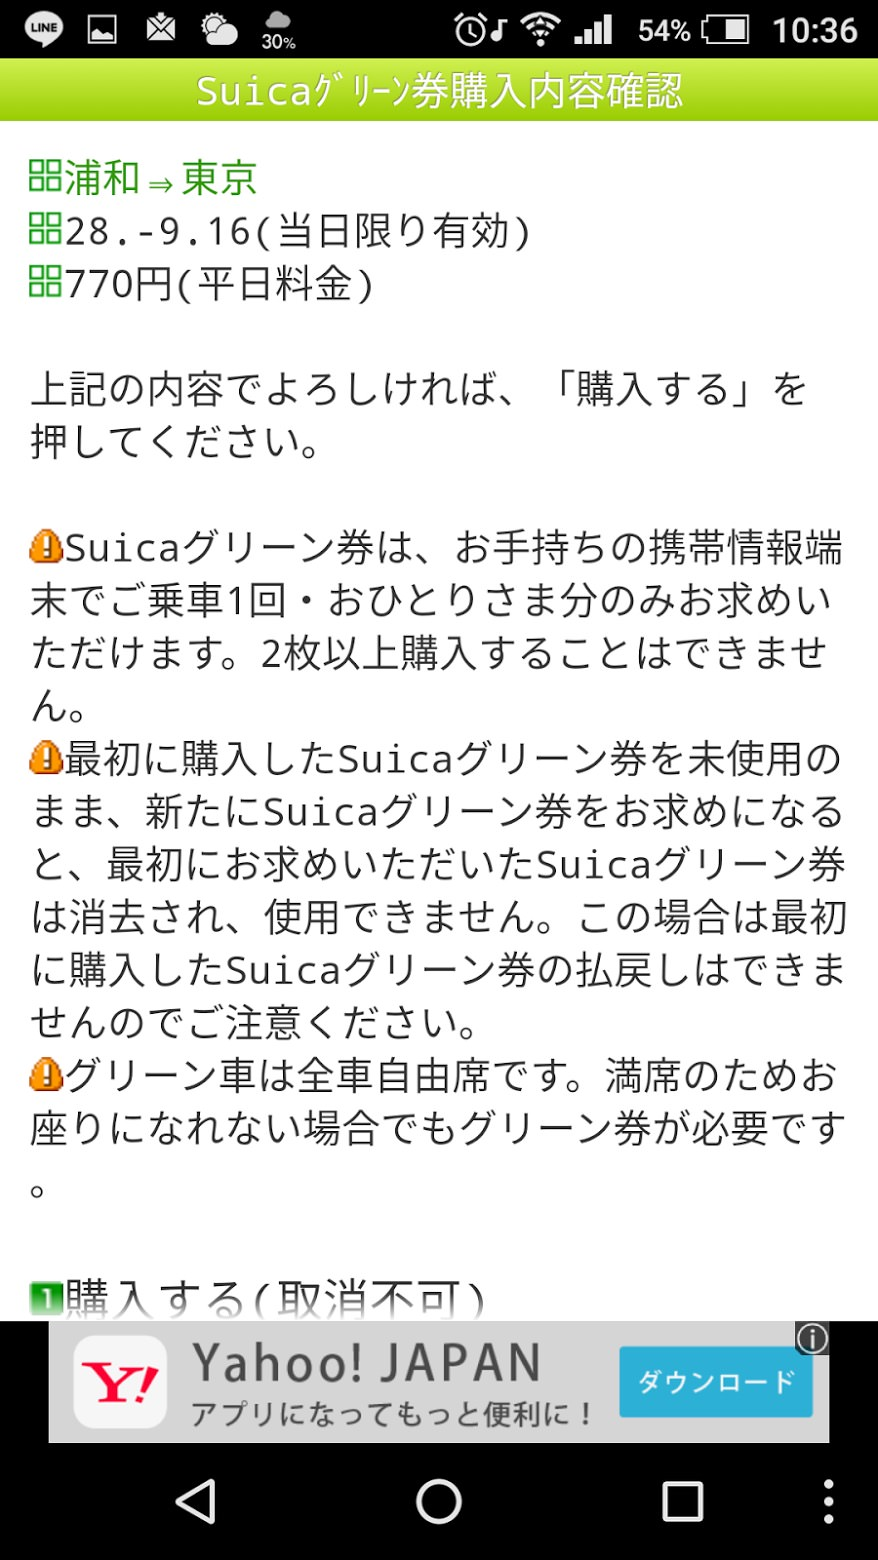 Iphone mobile suica enshot 20160916 103626